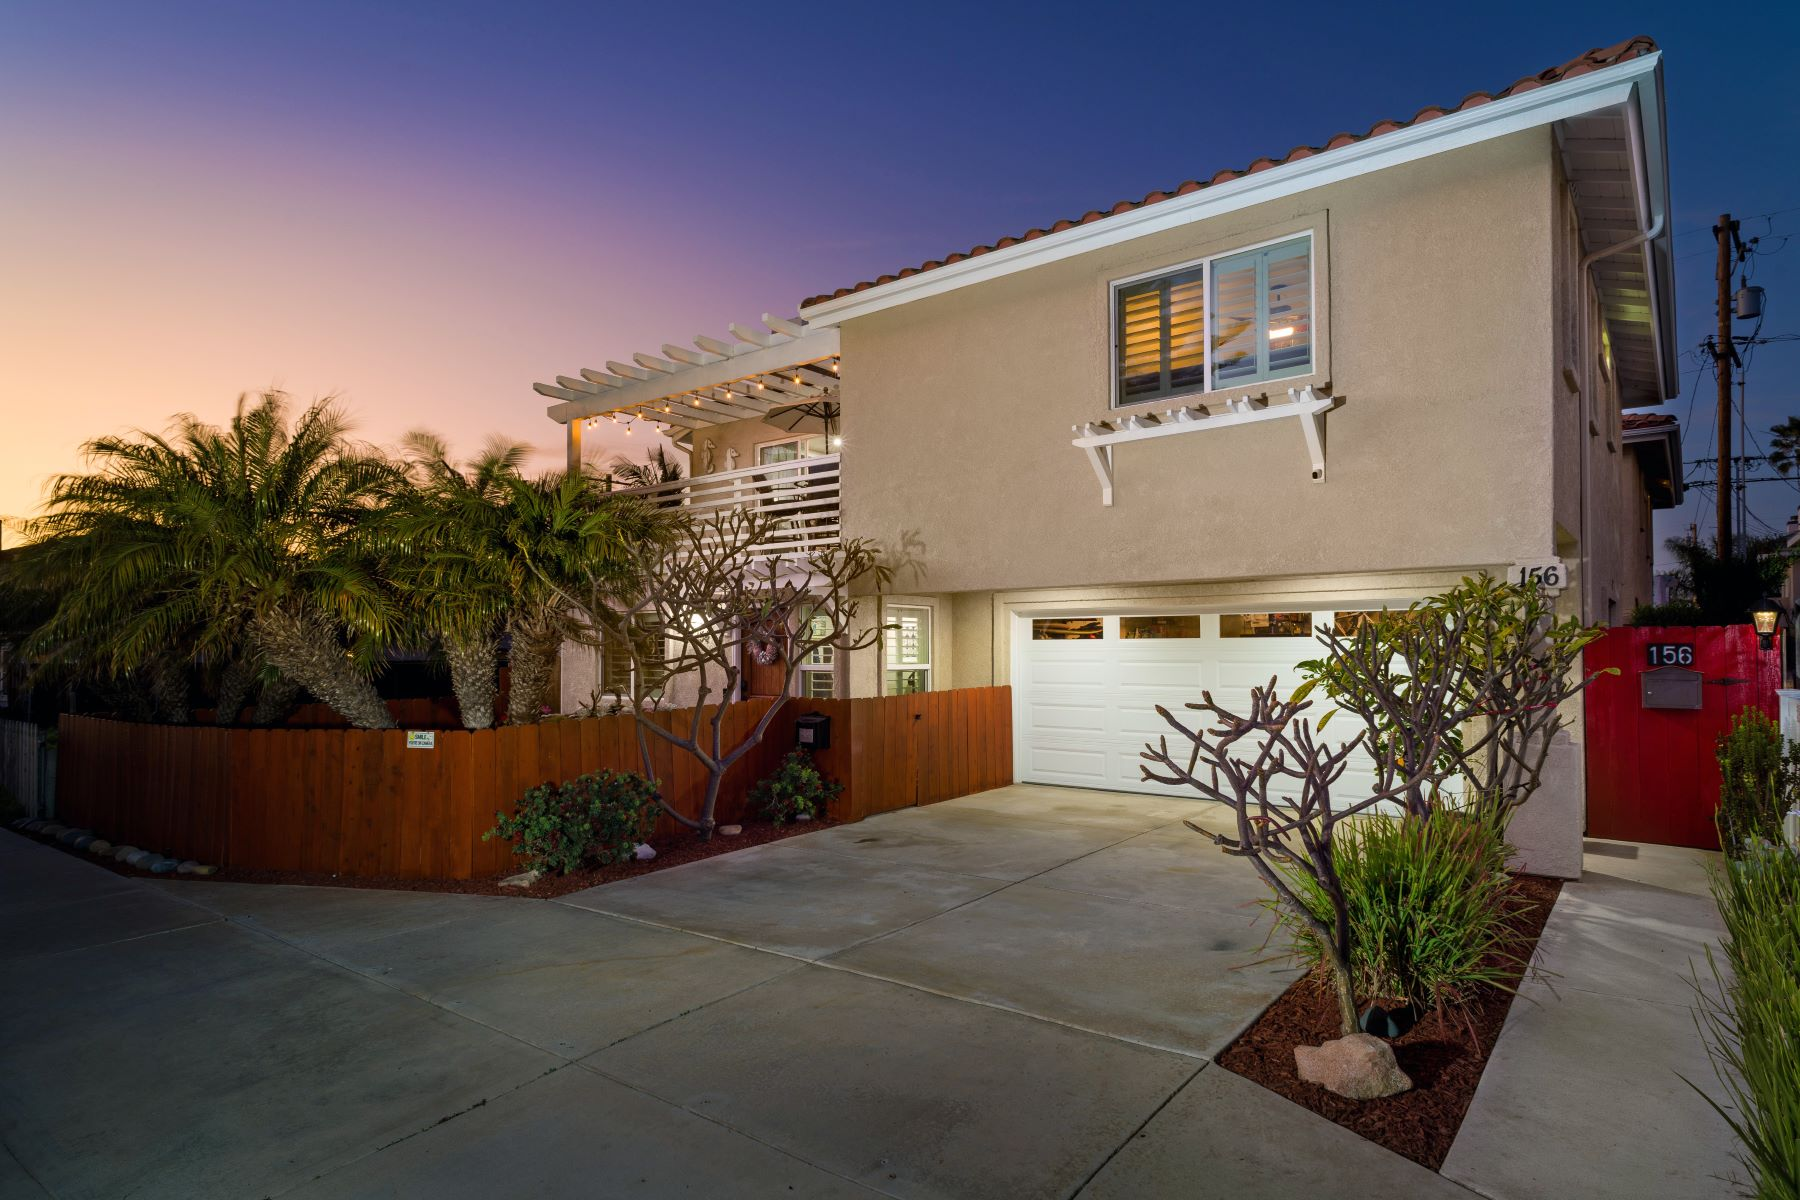 Single Family Homes for Active at Imperial Beach 154 Elm Ave Imperial Beach, California 91932 United States